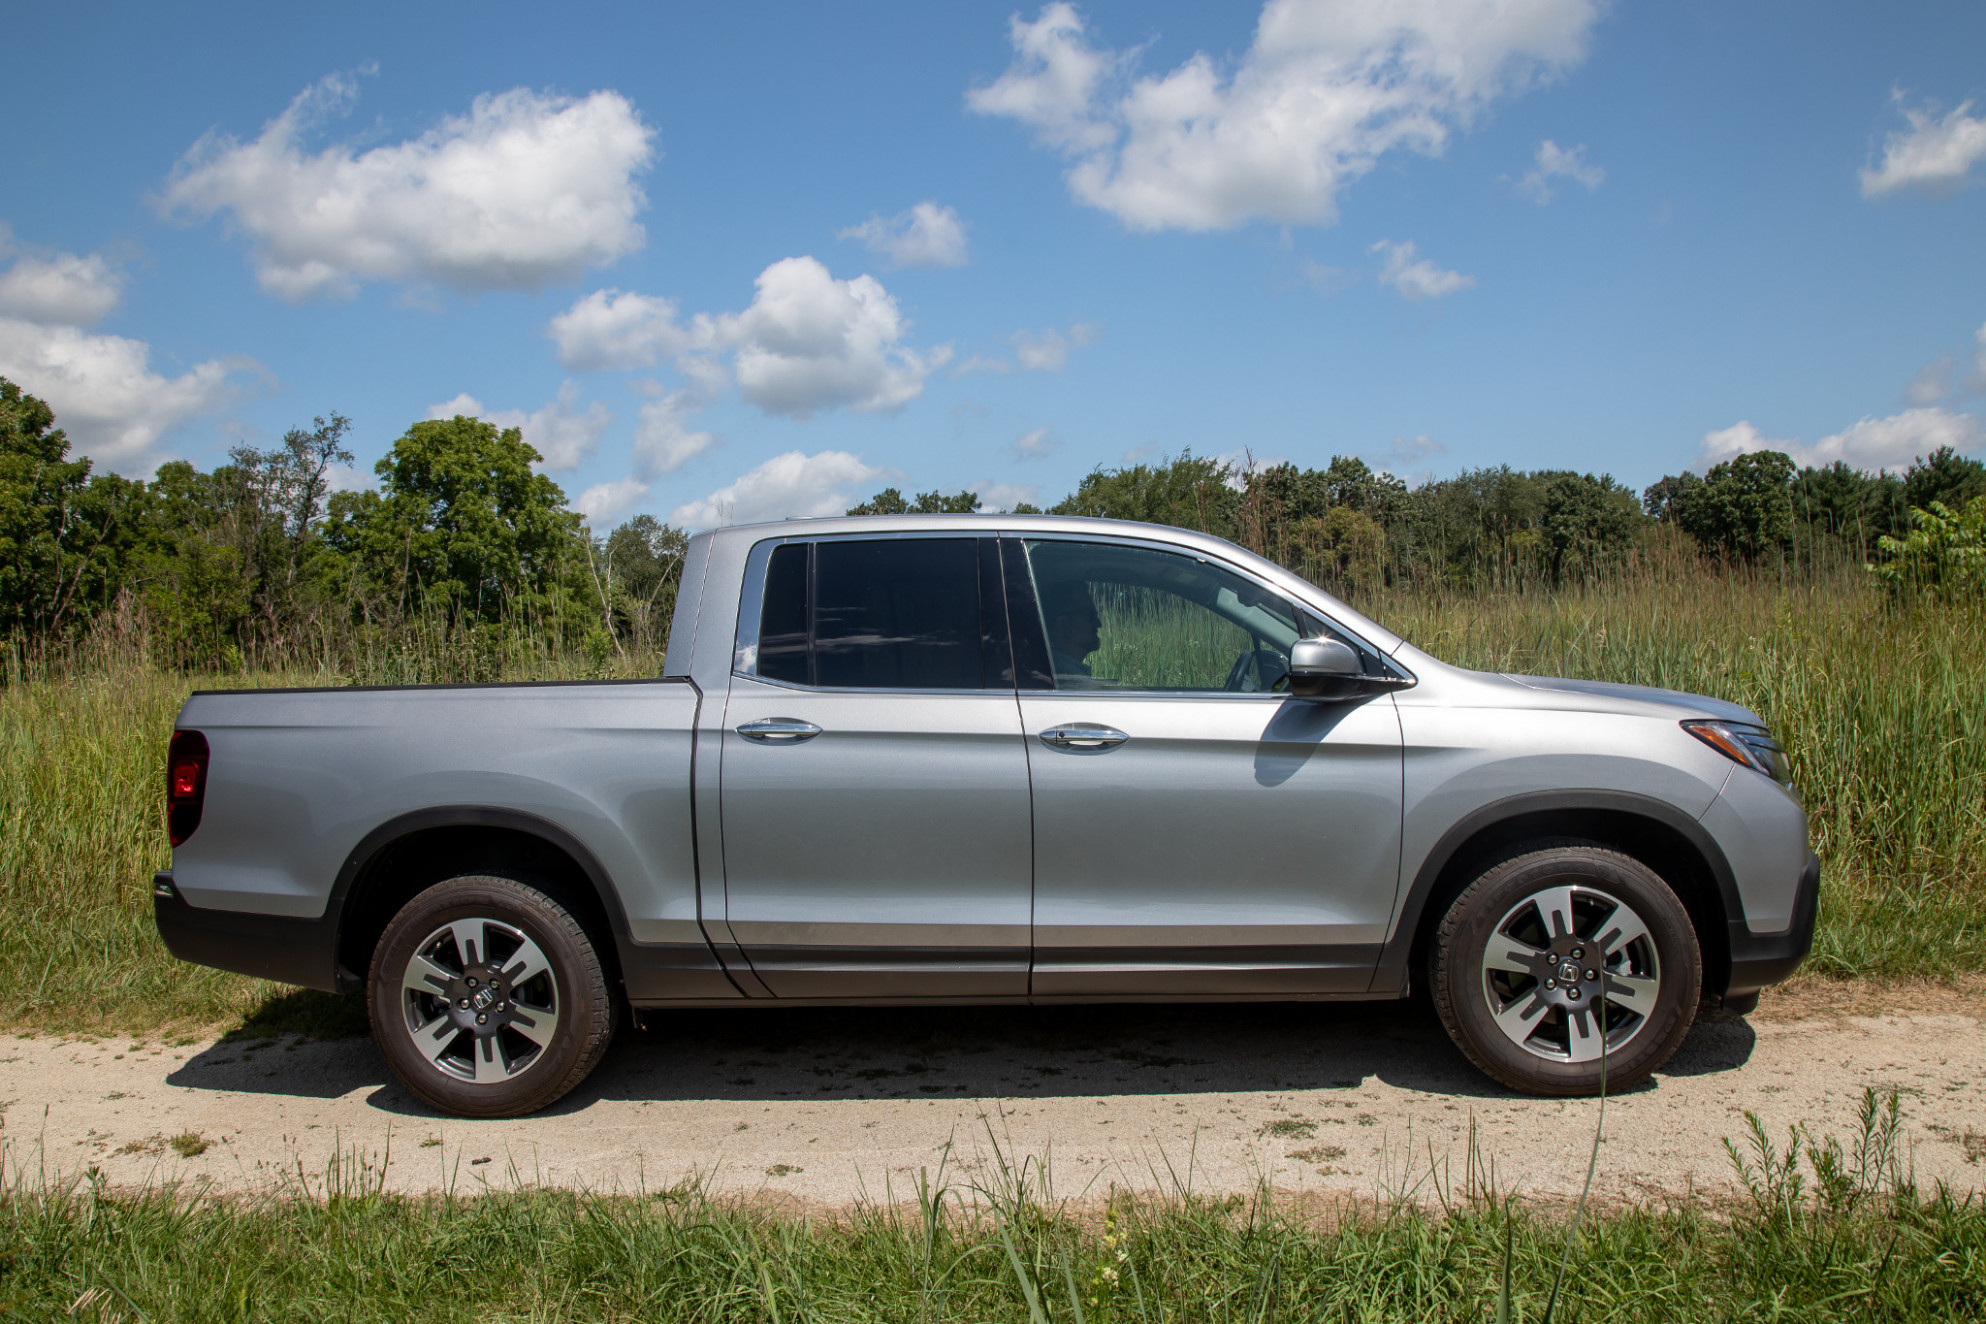 8 Honda Ridgeline: Which Should You Buy, 8 or 8? | News ..